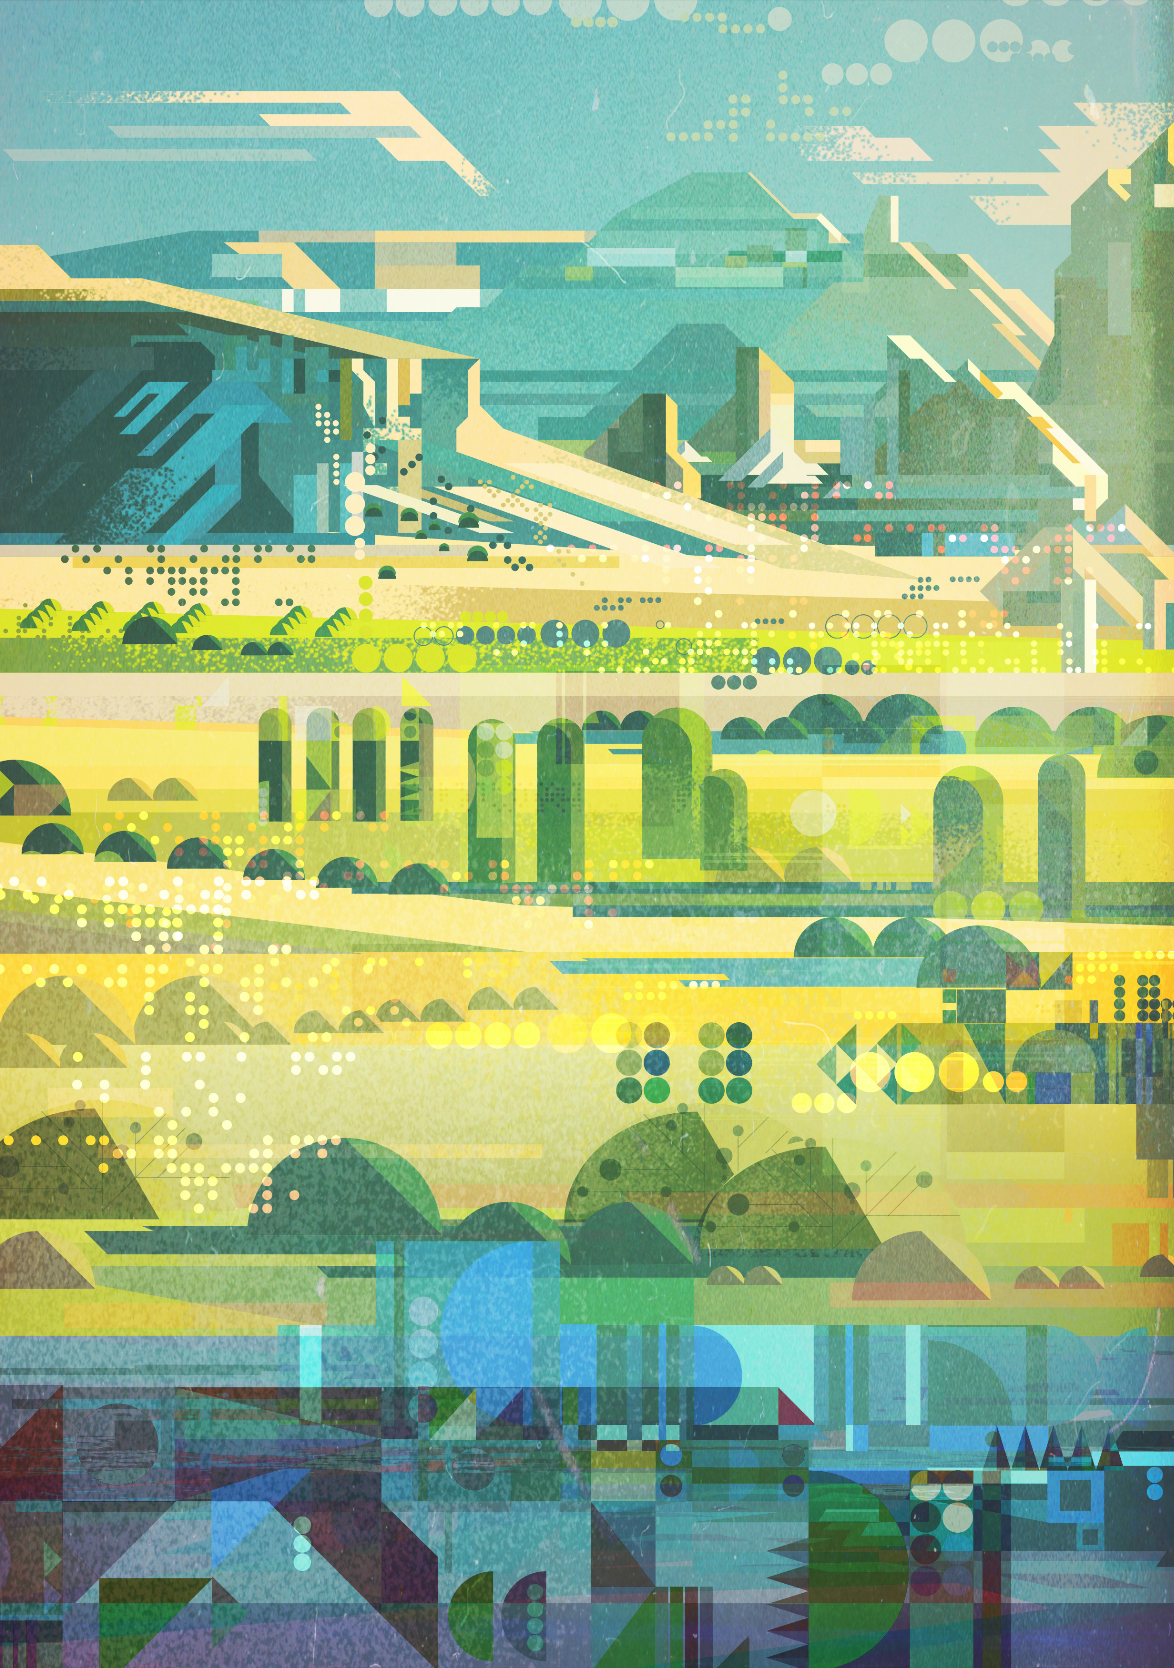 Illustration / James Gilleard (2)